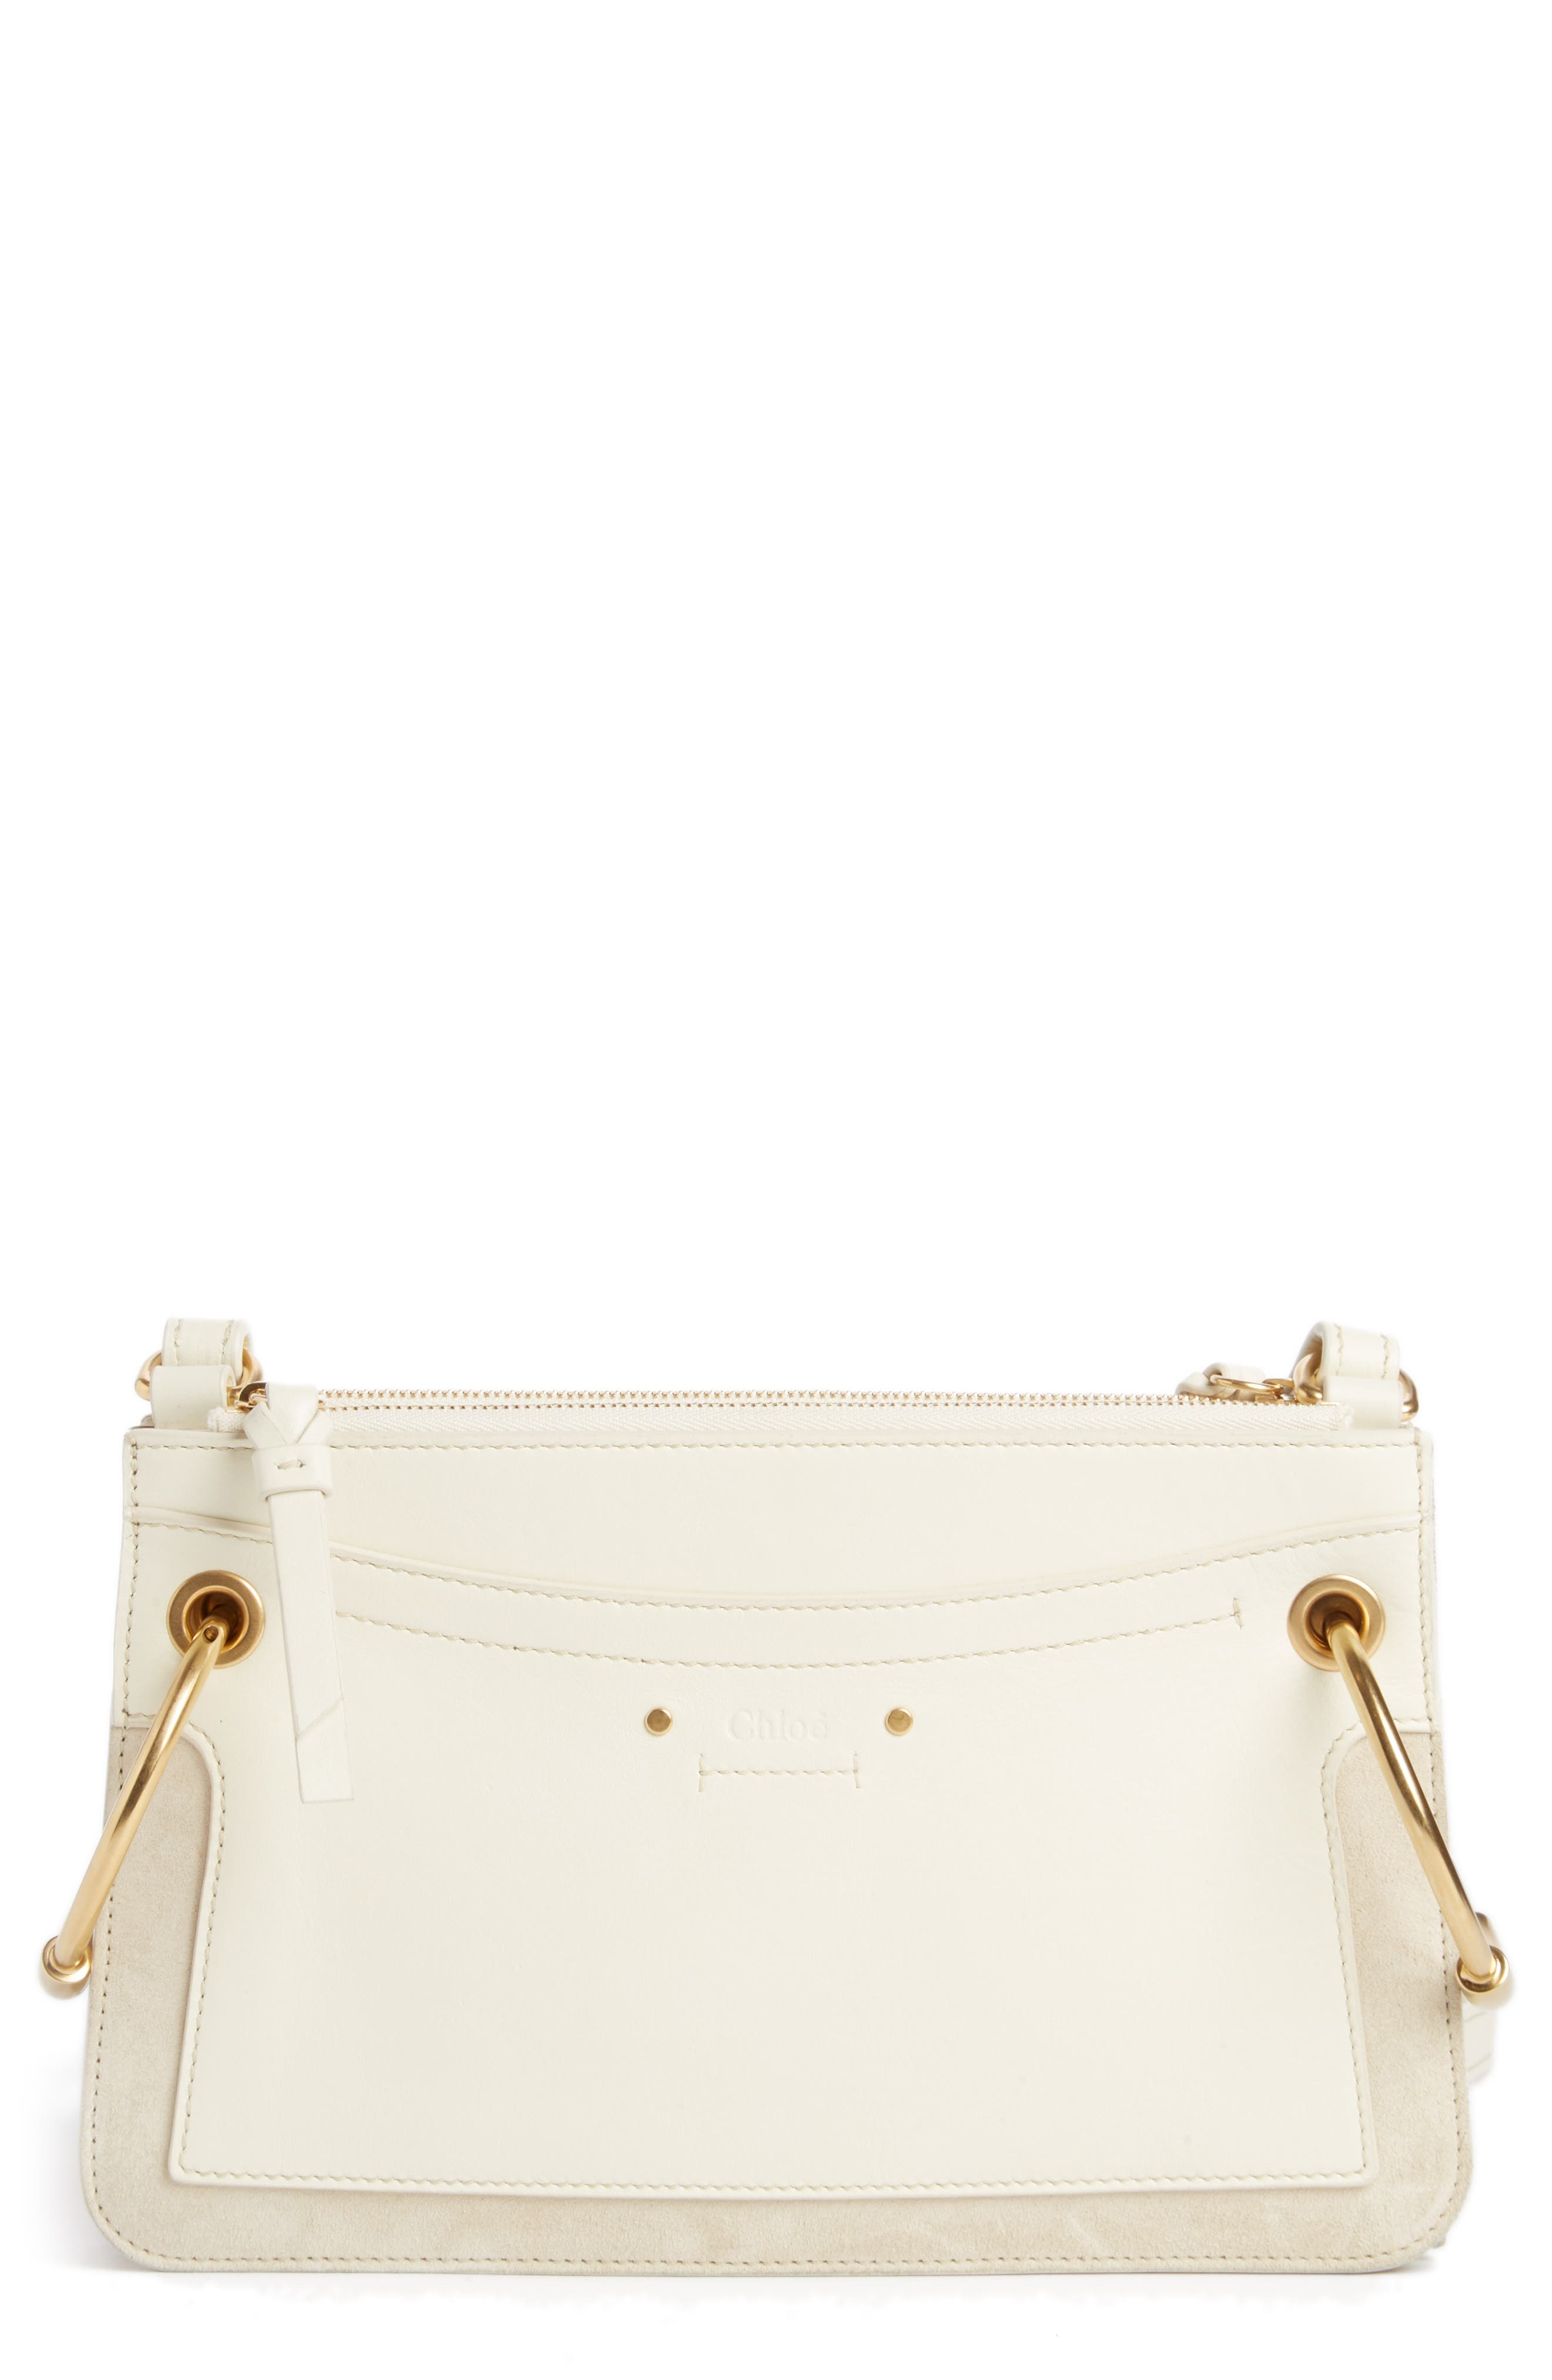 Small Roy Leather Crossbody Bag,                             Main thumbnail 1, color,                             NATURAL WHITE